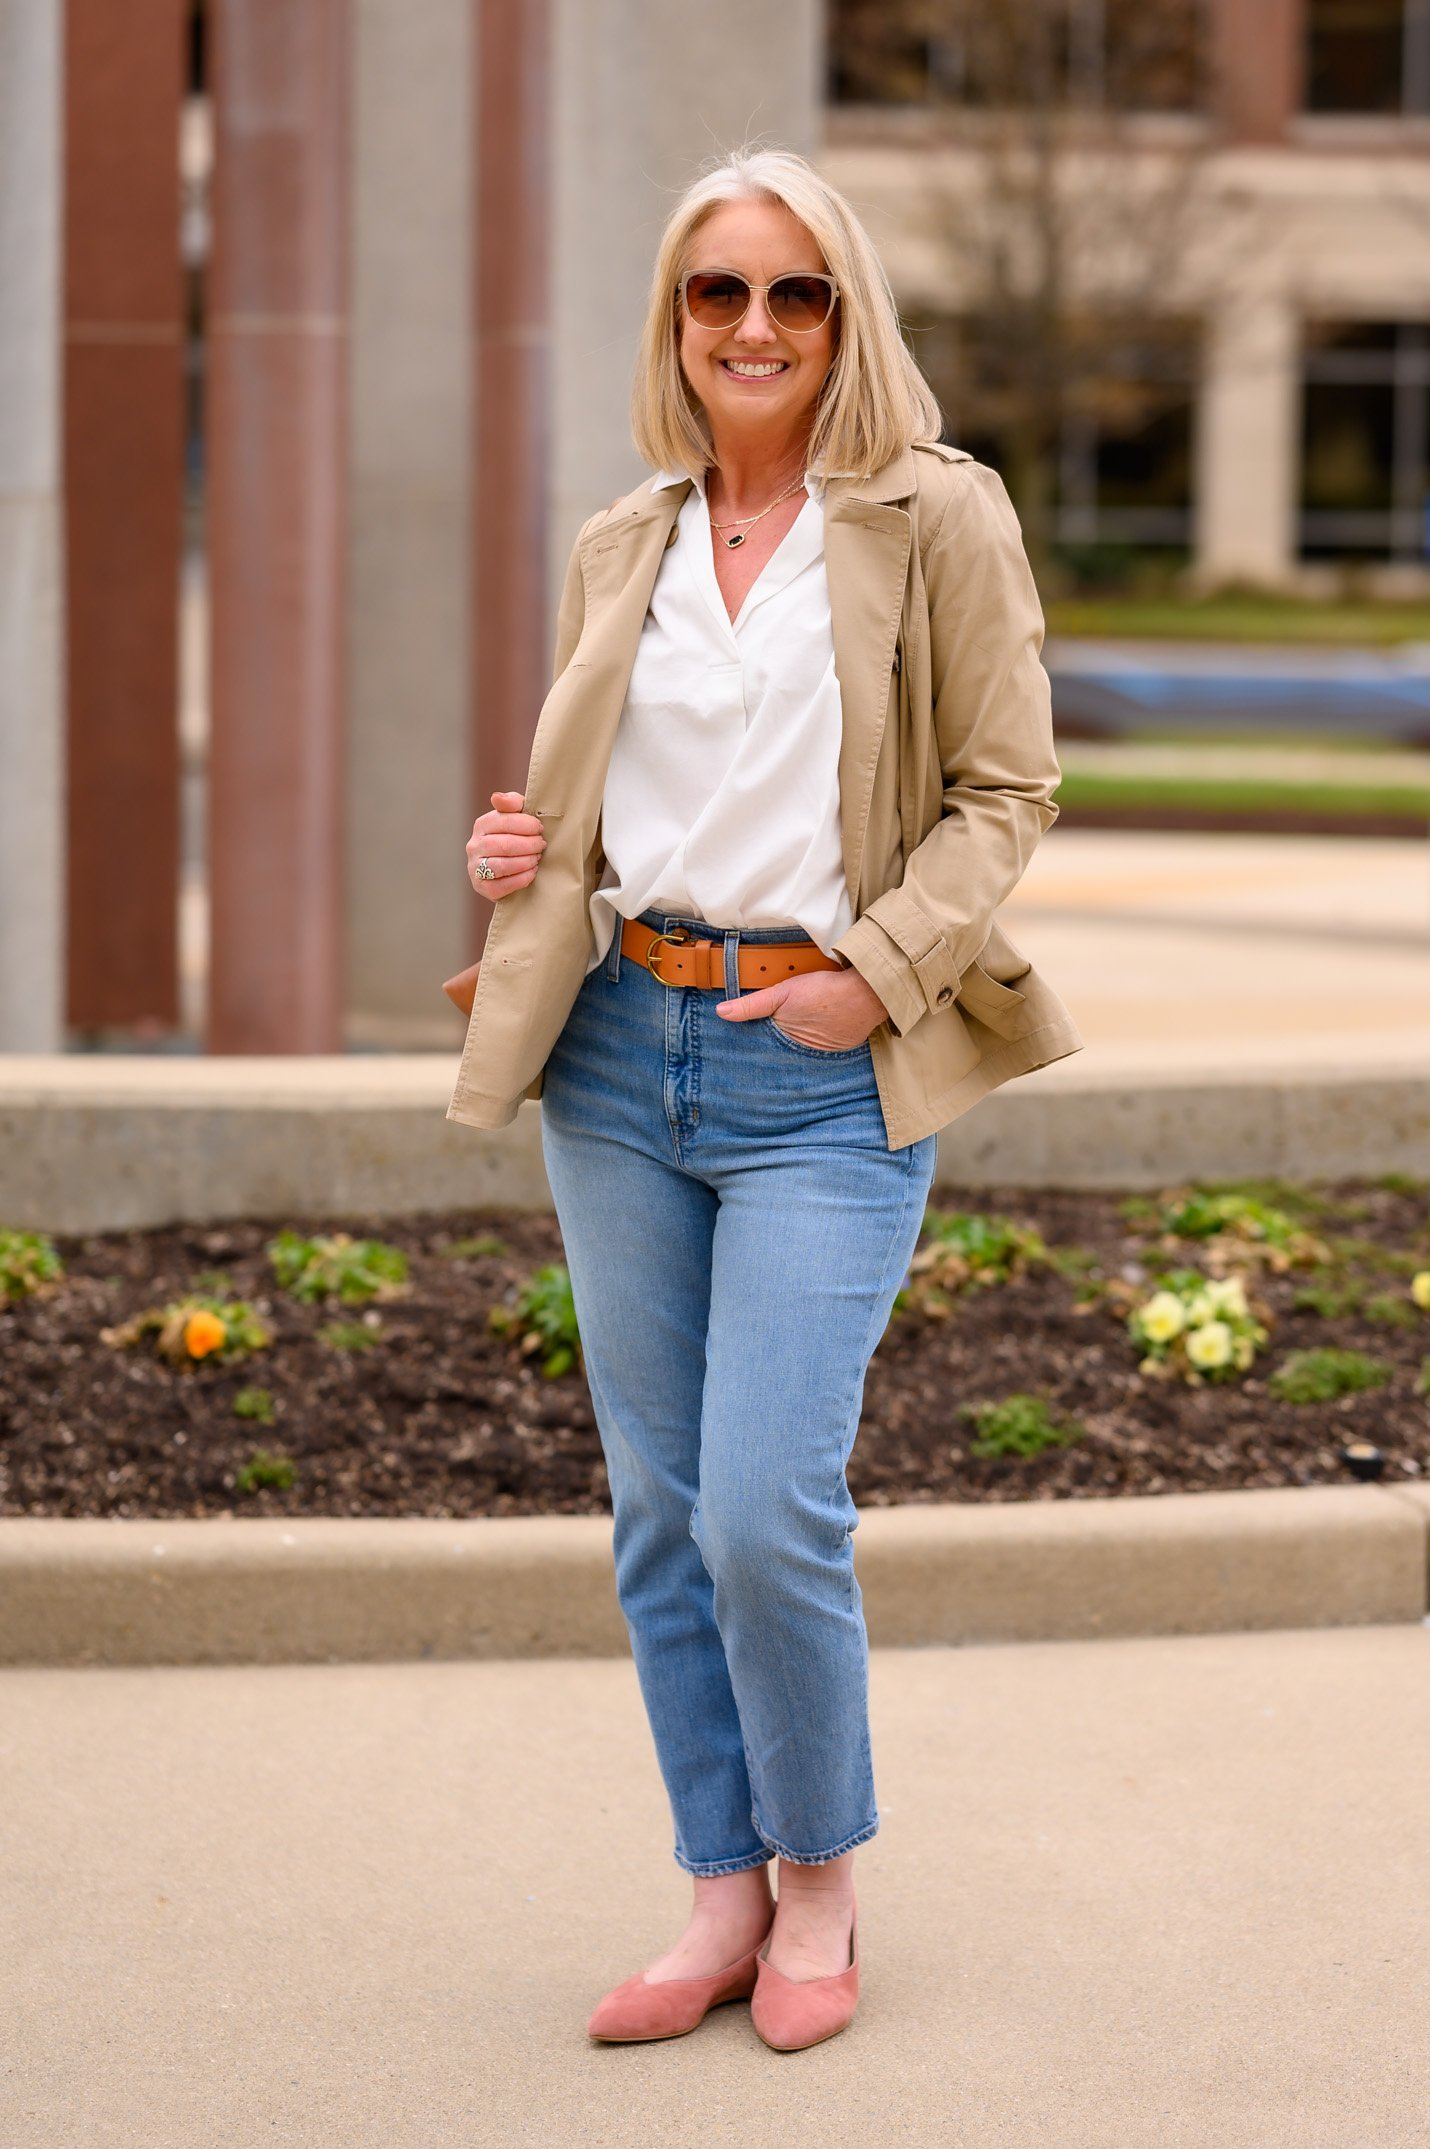 Casual Jeans Outfit Without a Tee